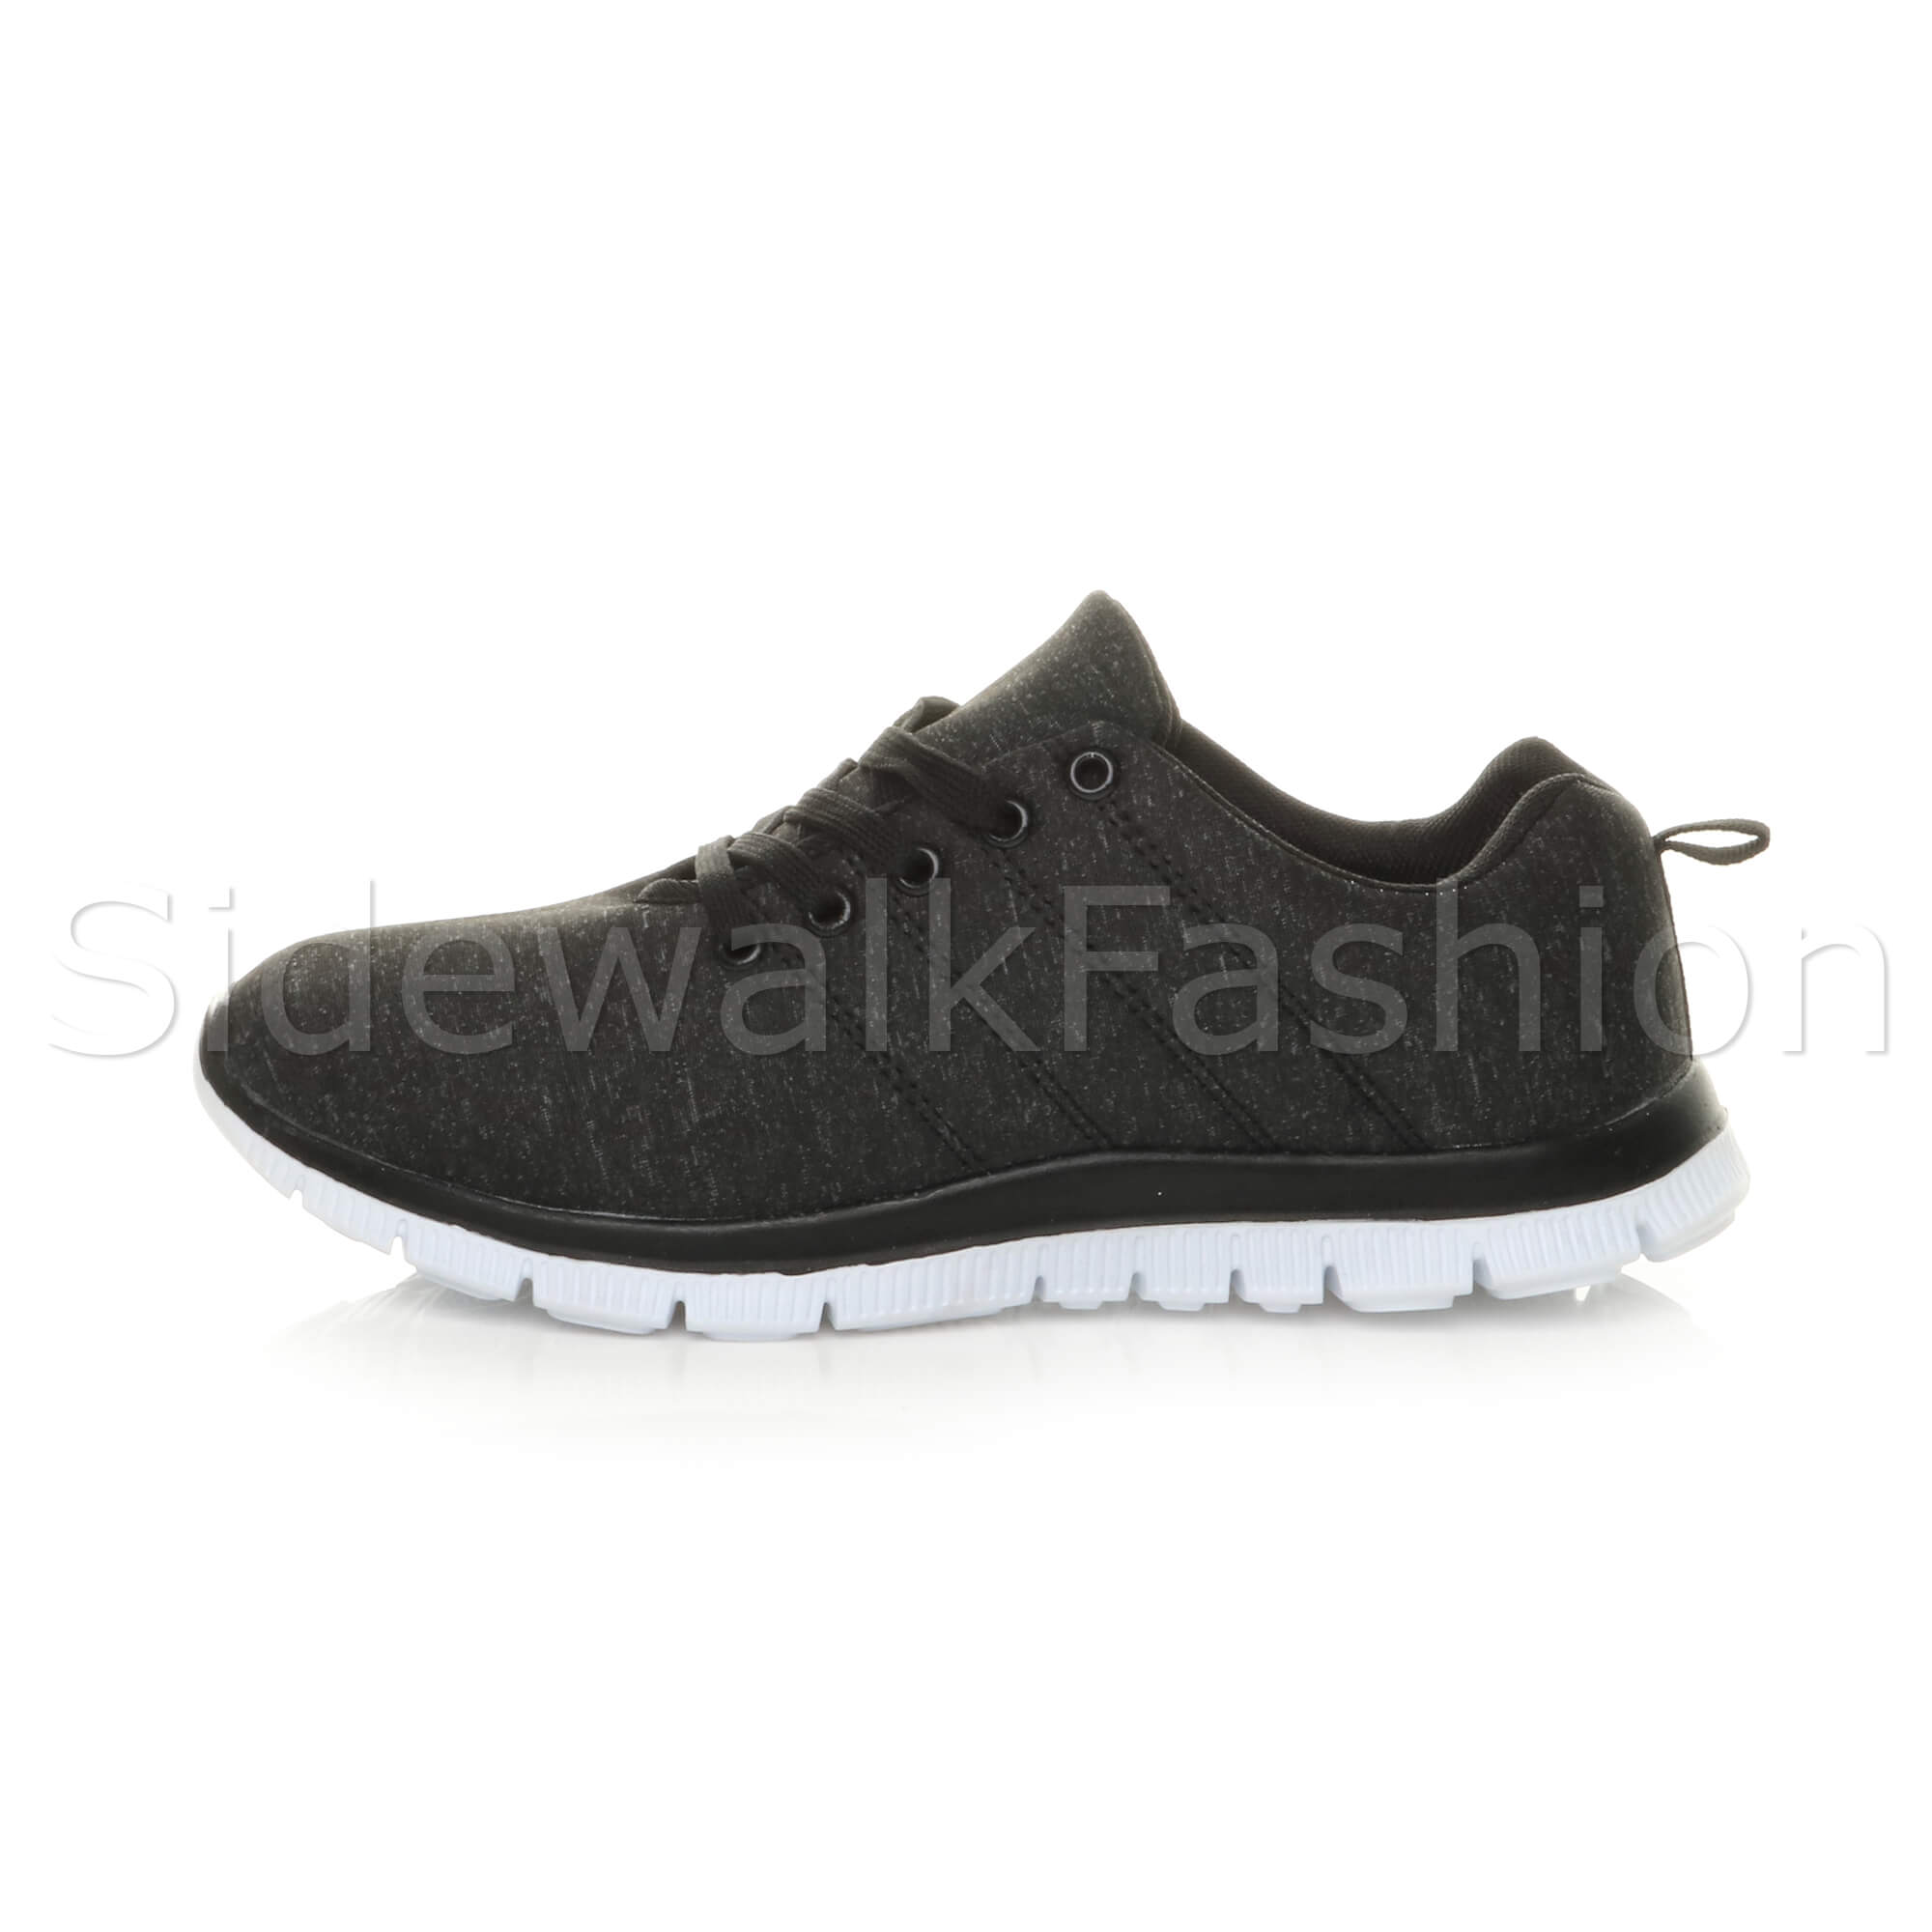 Womens-ladies-comfort-memory-foam-lace-up-trainers-activewear-sneakers-gym-shoes thumbnail 21